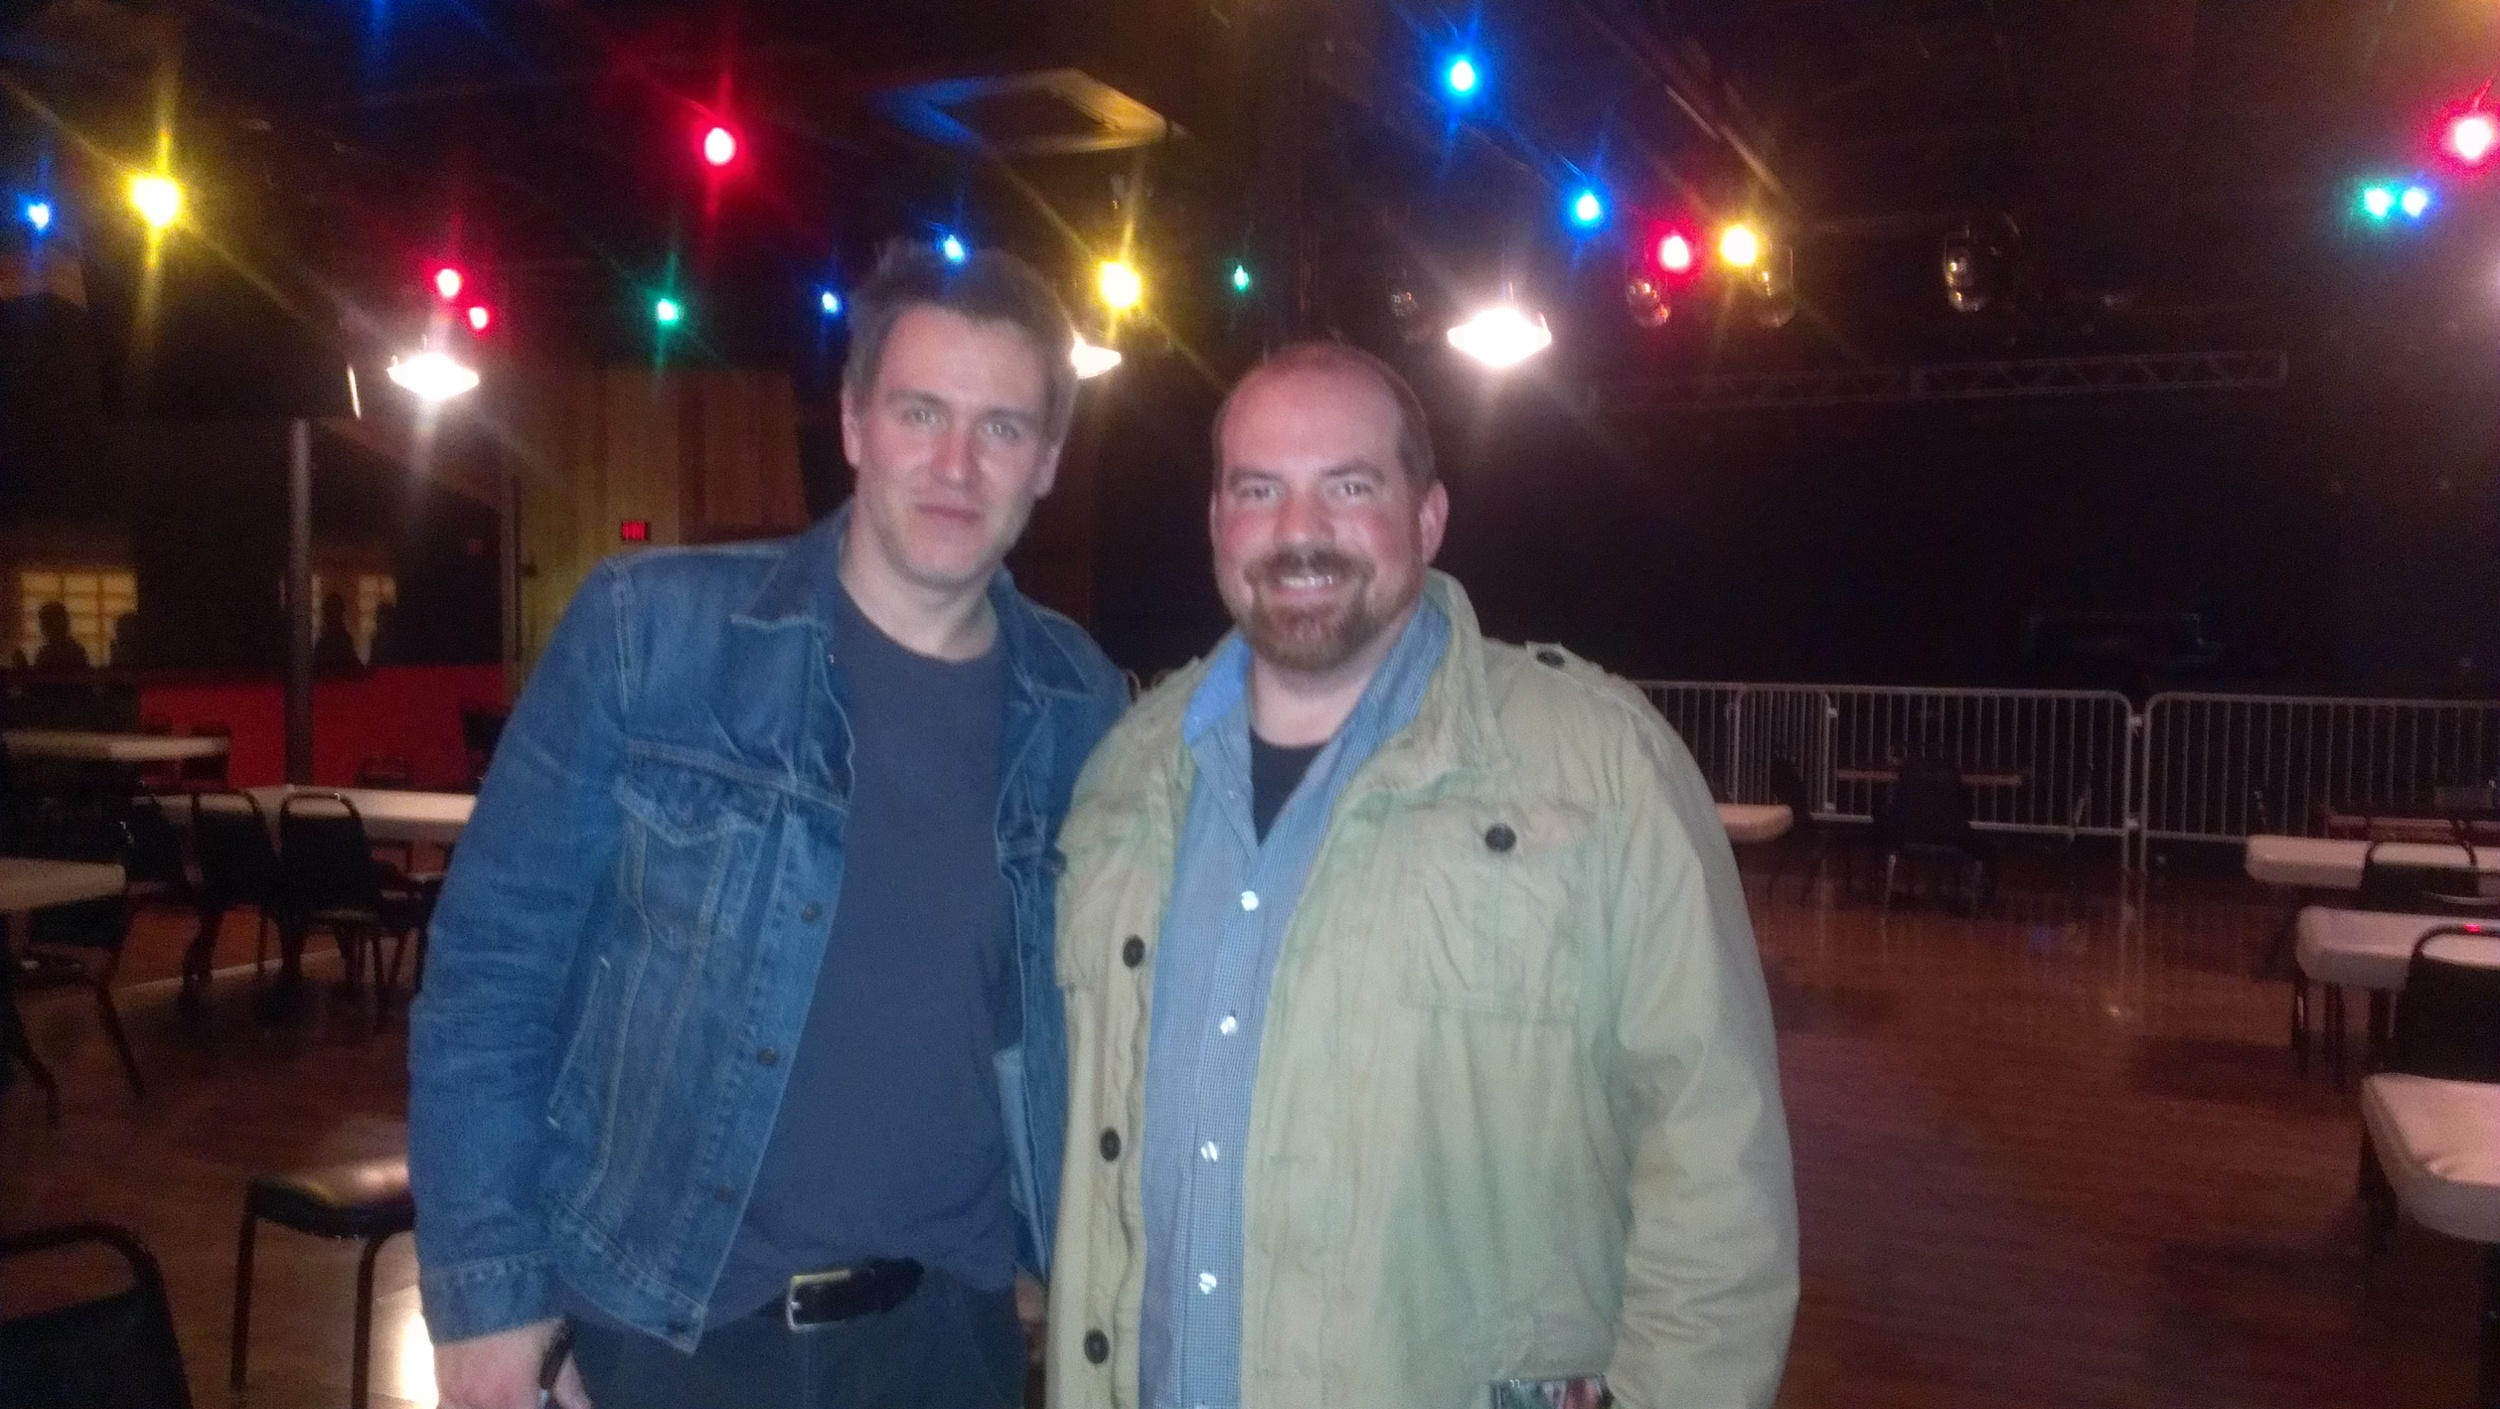 That time I got a picture with Stephen Lynch.